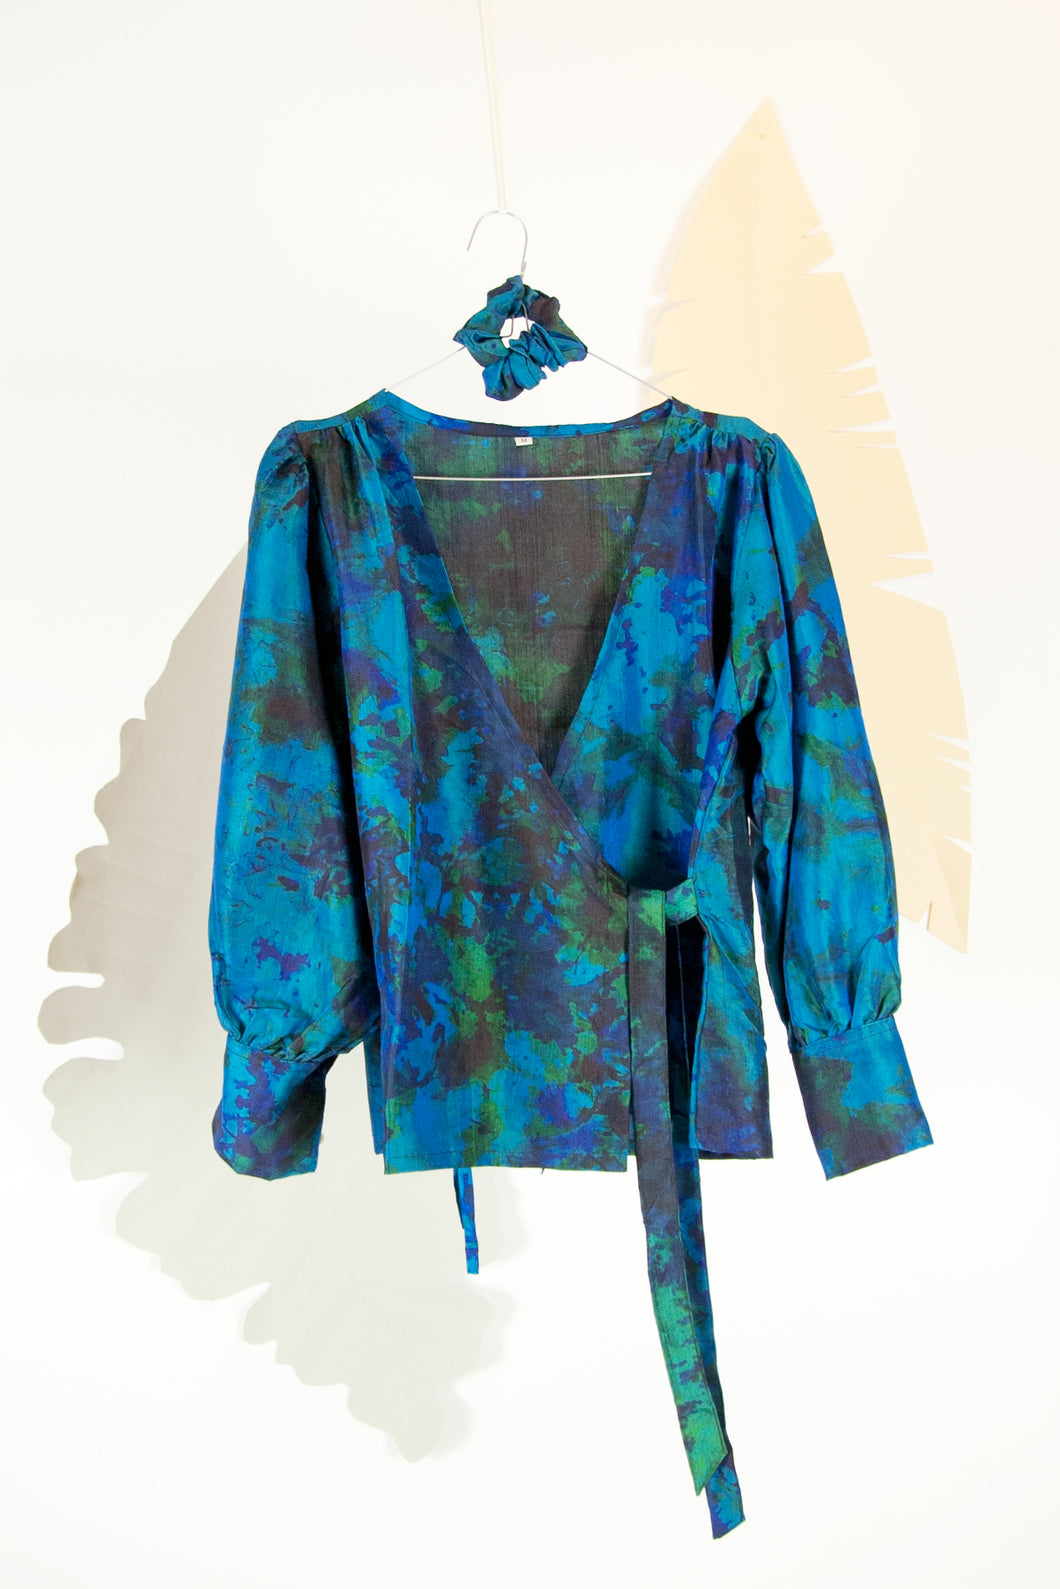 A Splash of Batik Blouse - M #02